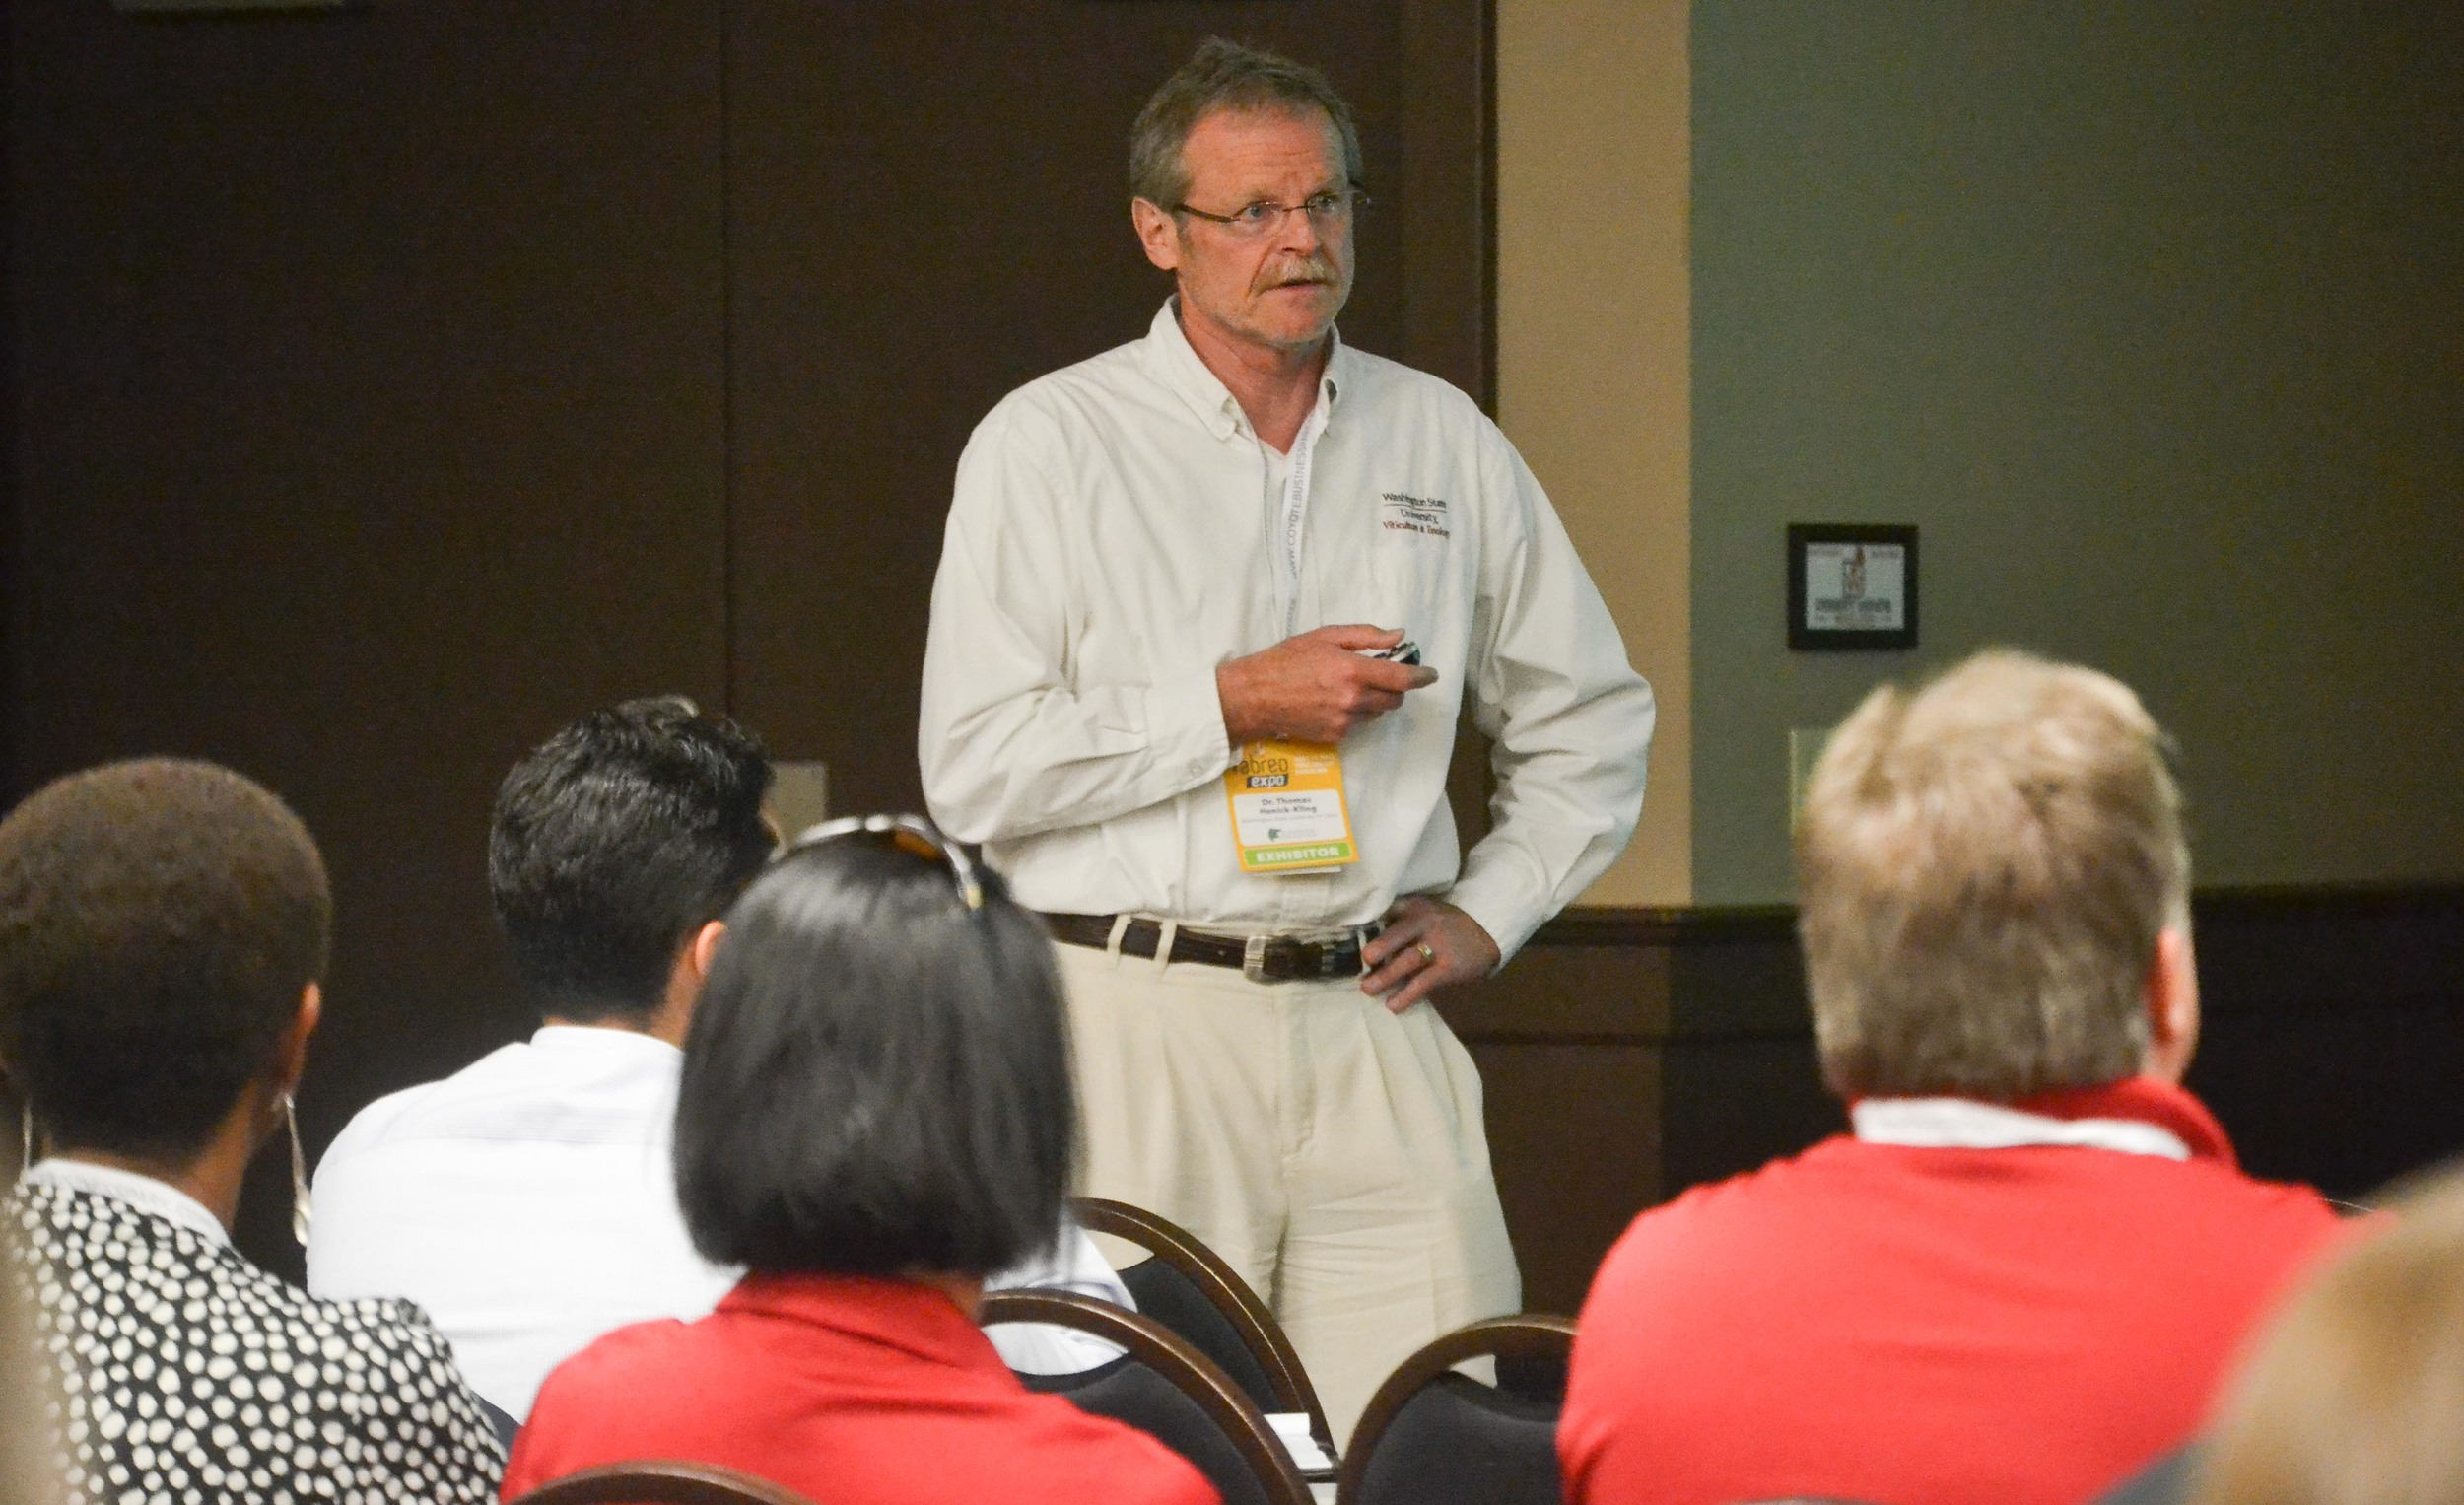 Great picture here of Dr. Thomas Henick-Kling during one of his lectures. Henick-Kling serves as the director of the viticulture and enology program at Washington State University, Tri-Cities.